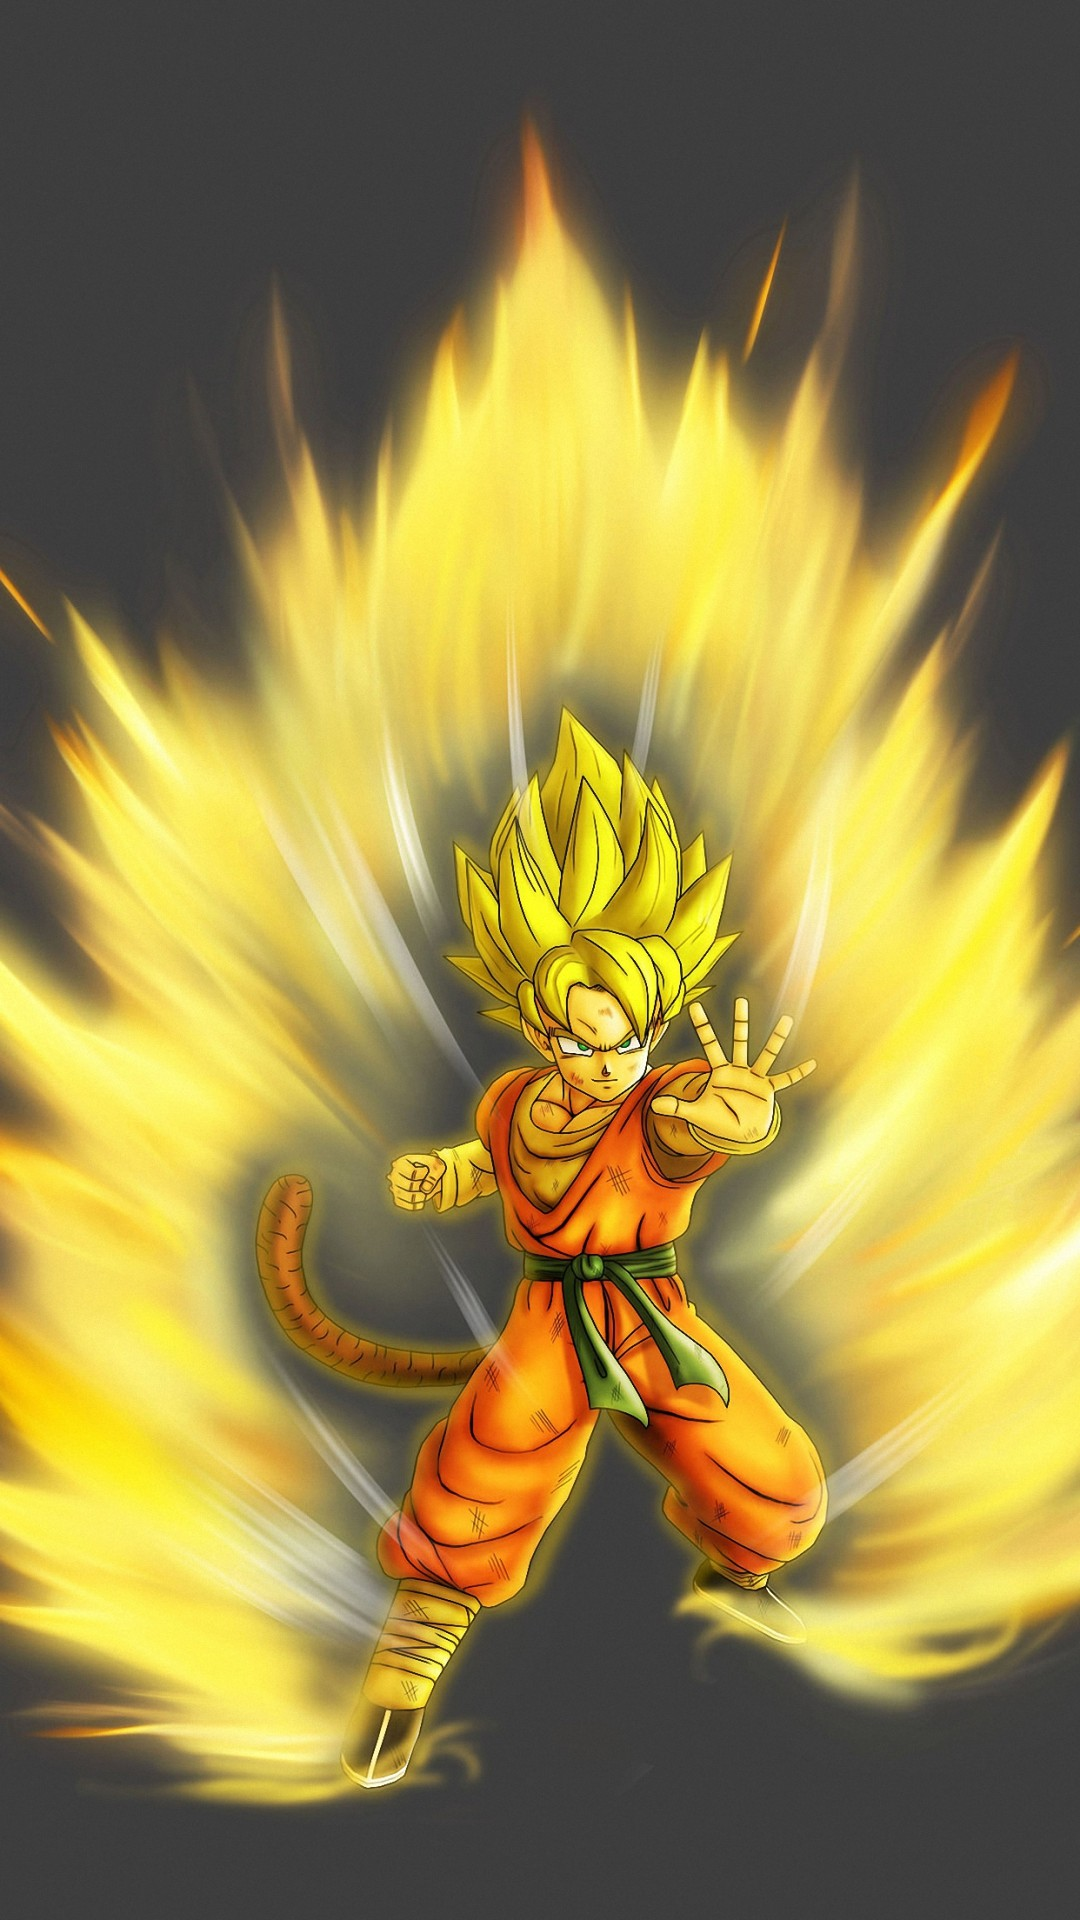 Dragon ball z live wallpapers 67 images - Dragon ball z live wallpaper iphone ...